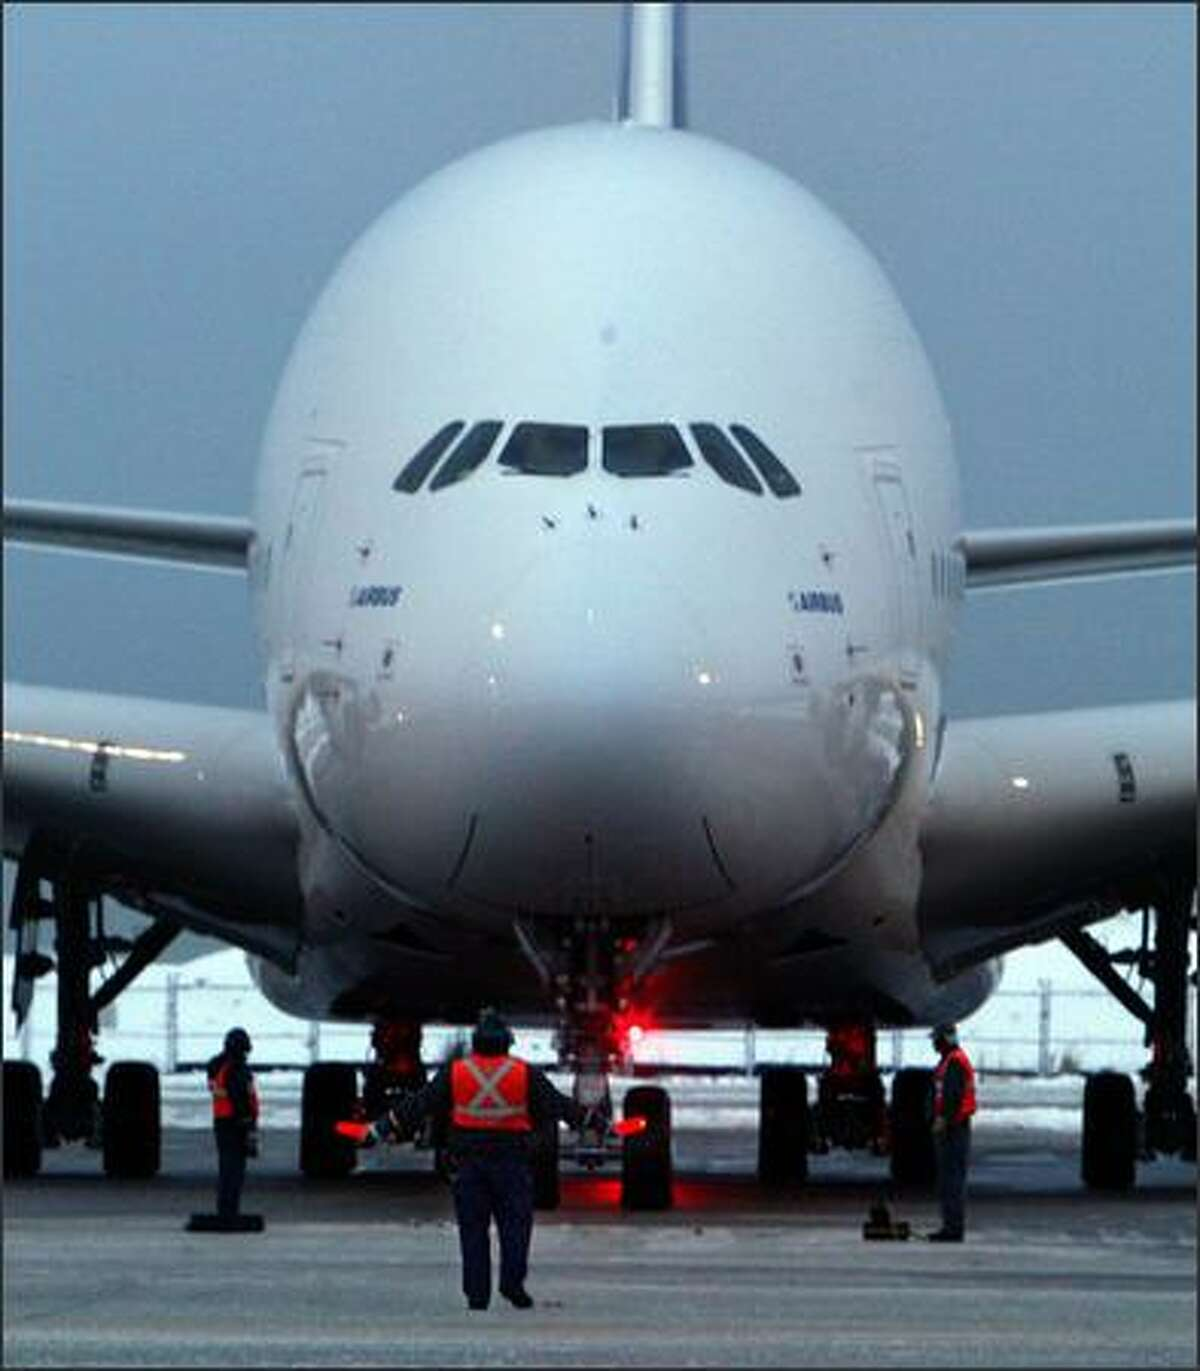 The A380 taxis after landing at Vancouver International Airport in British Columbia.